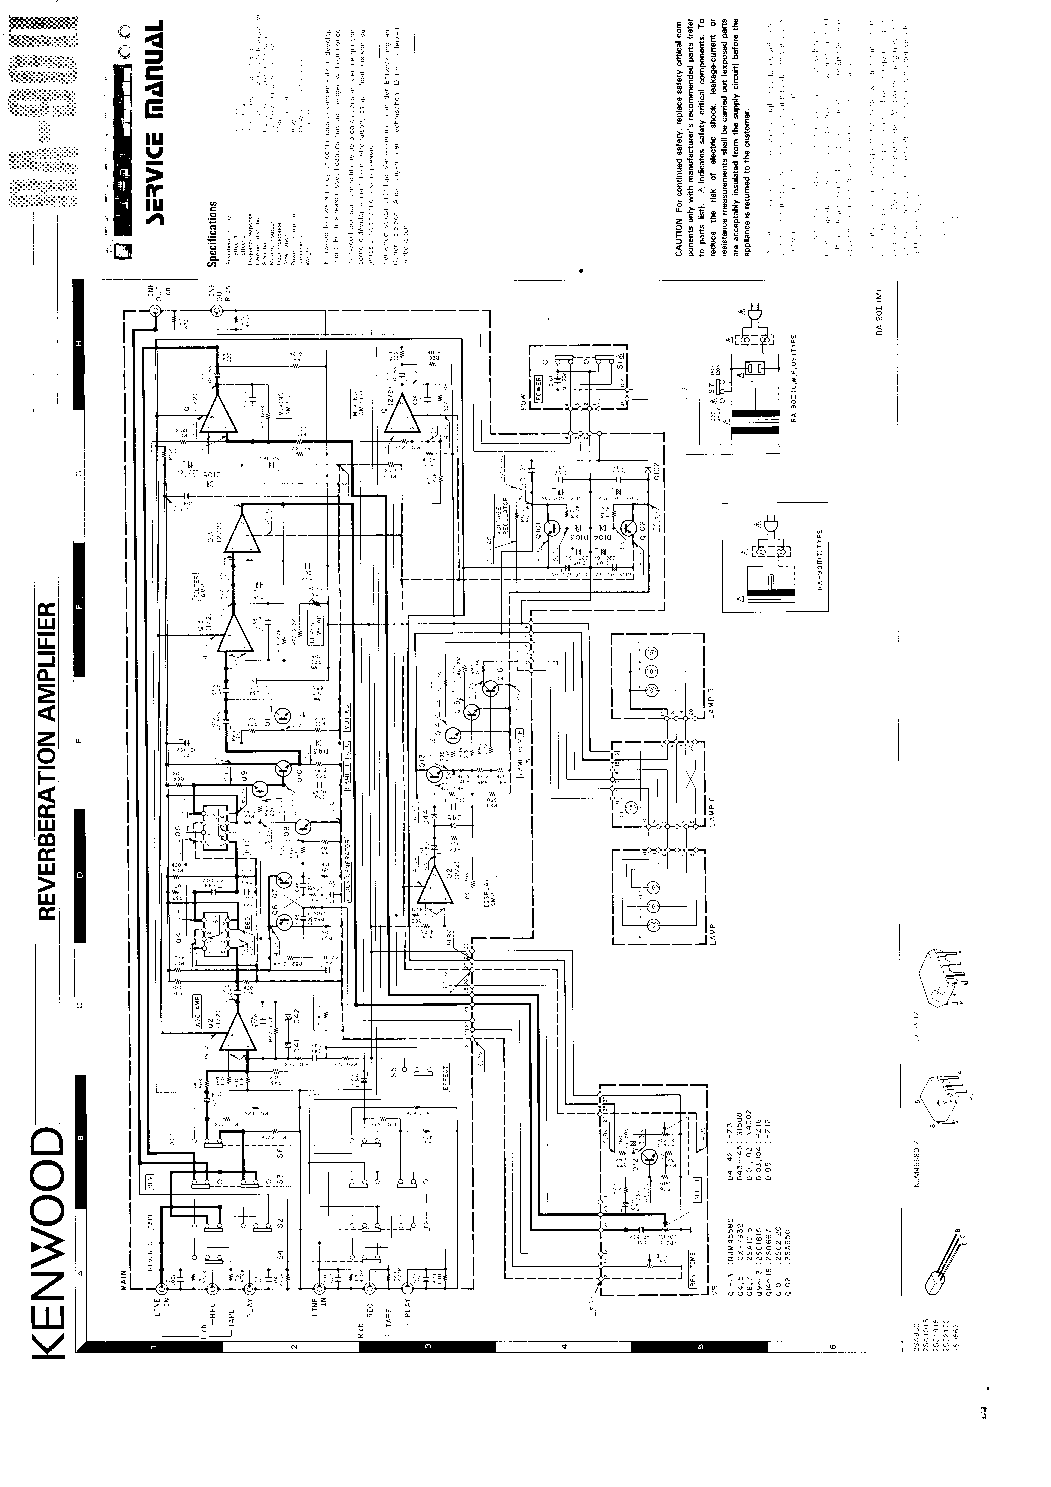 KENWOOD KR-710 SM Service Manual download, schematics